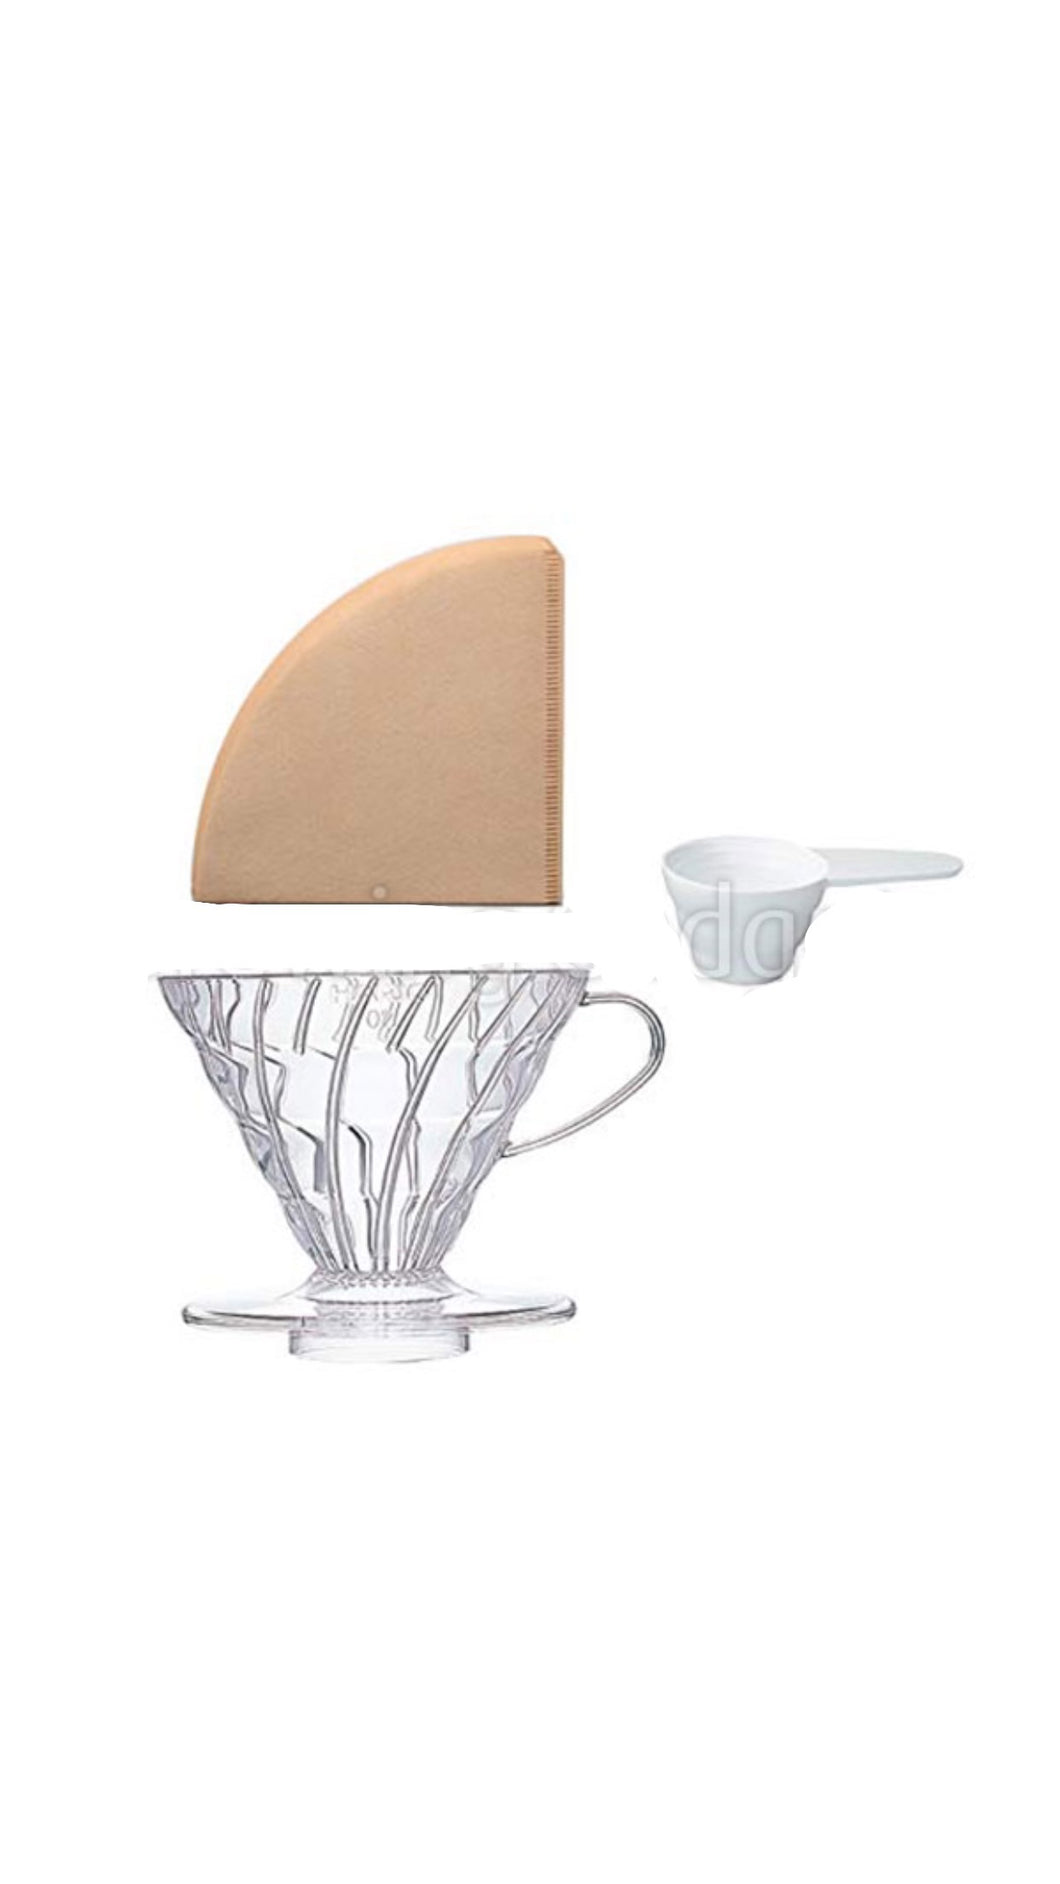 Hario V60 02 Coffee Dripper & Paper Filter 40 peace